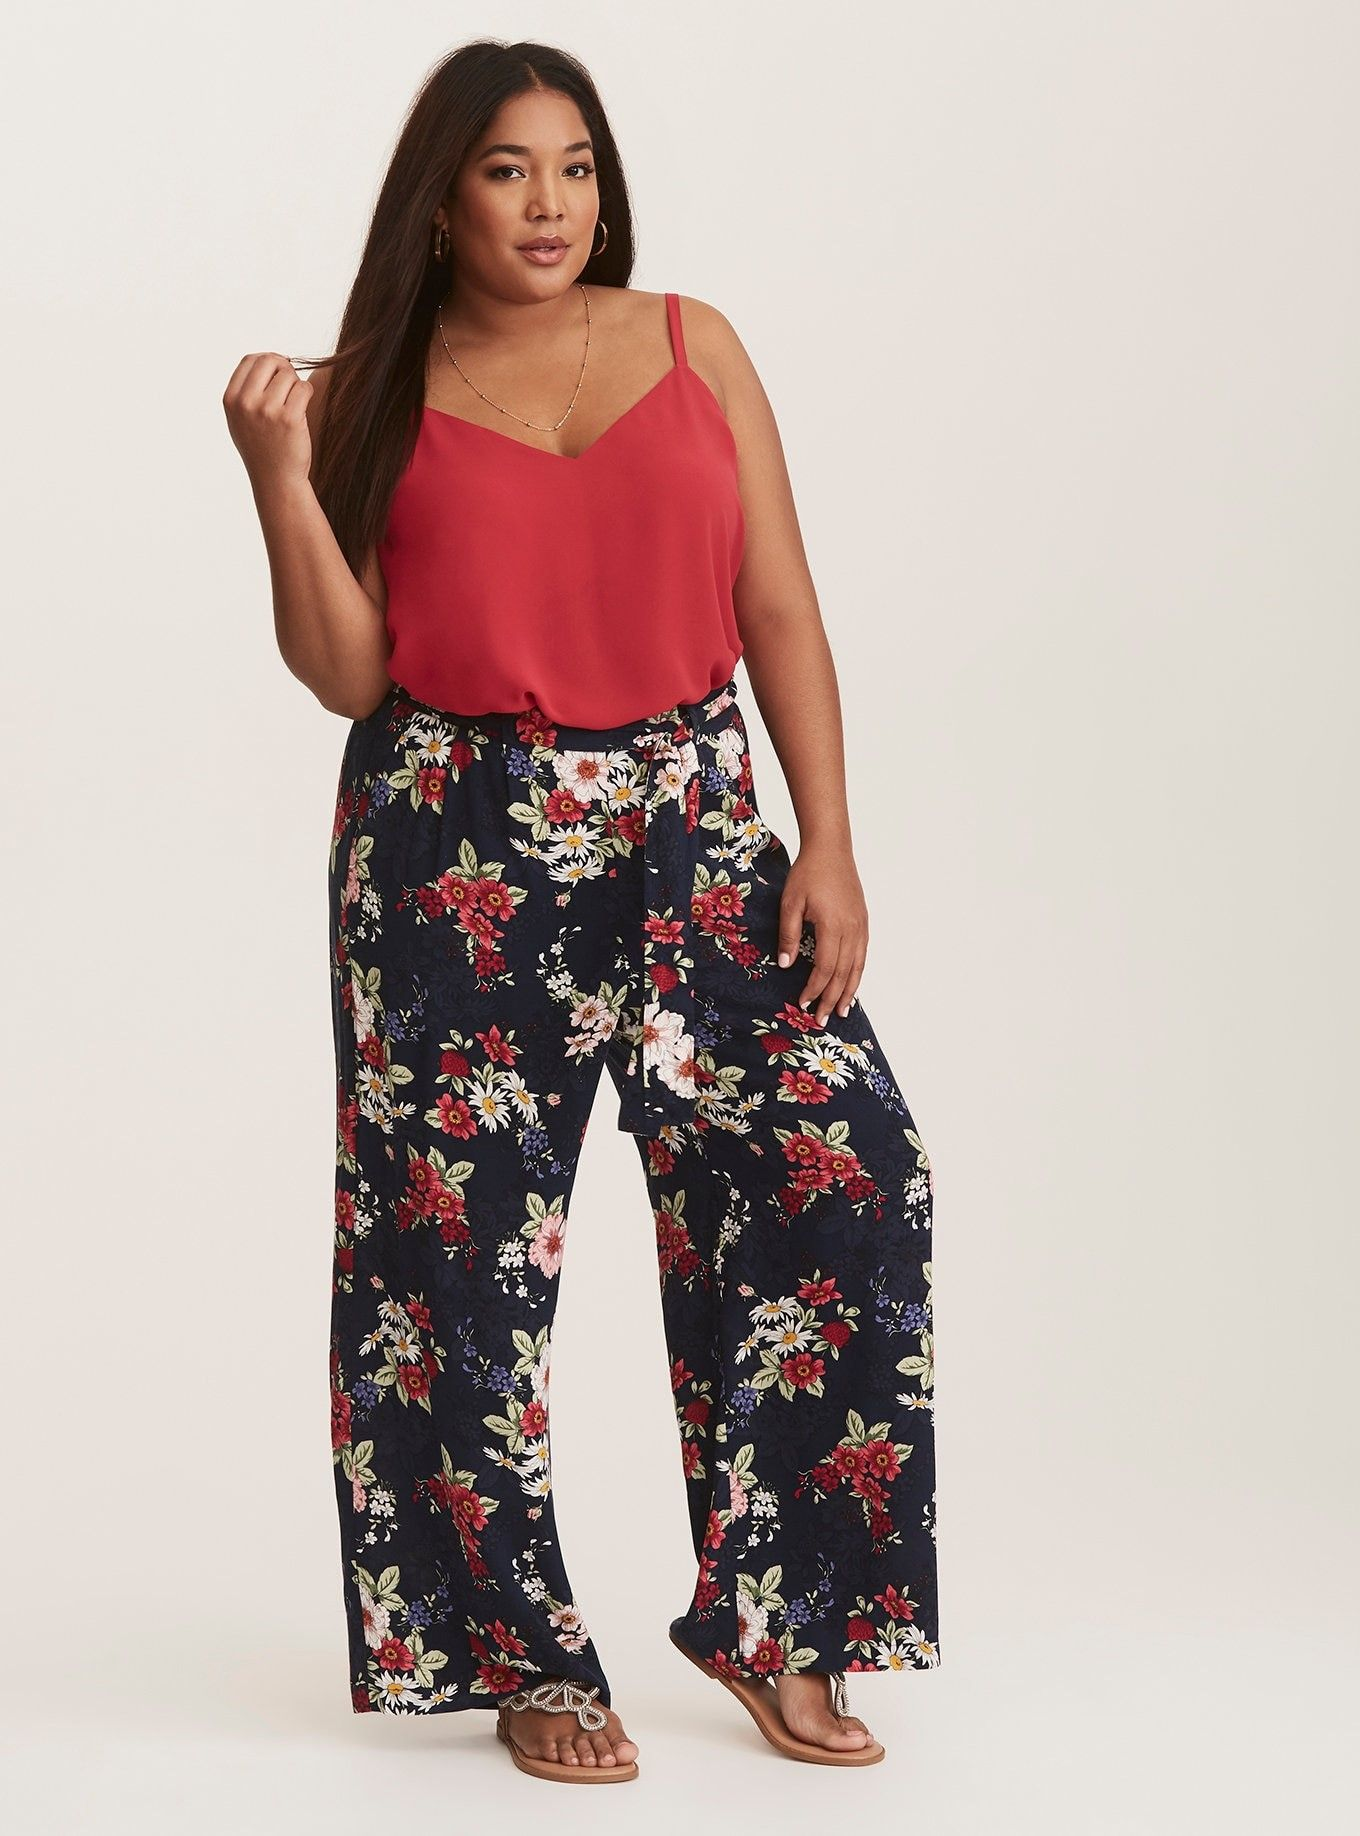 384ad24b7ac7e Navy Floral Print Challis Wide Leg Pants - In a floral printed challis  fabric